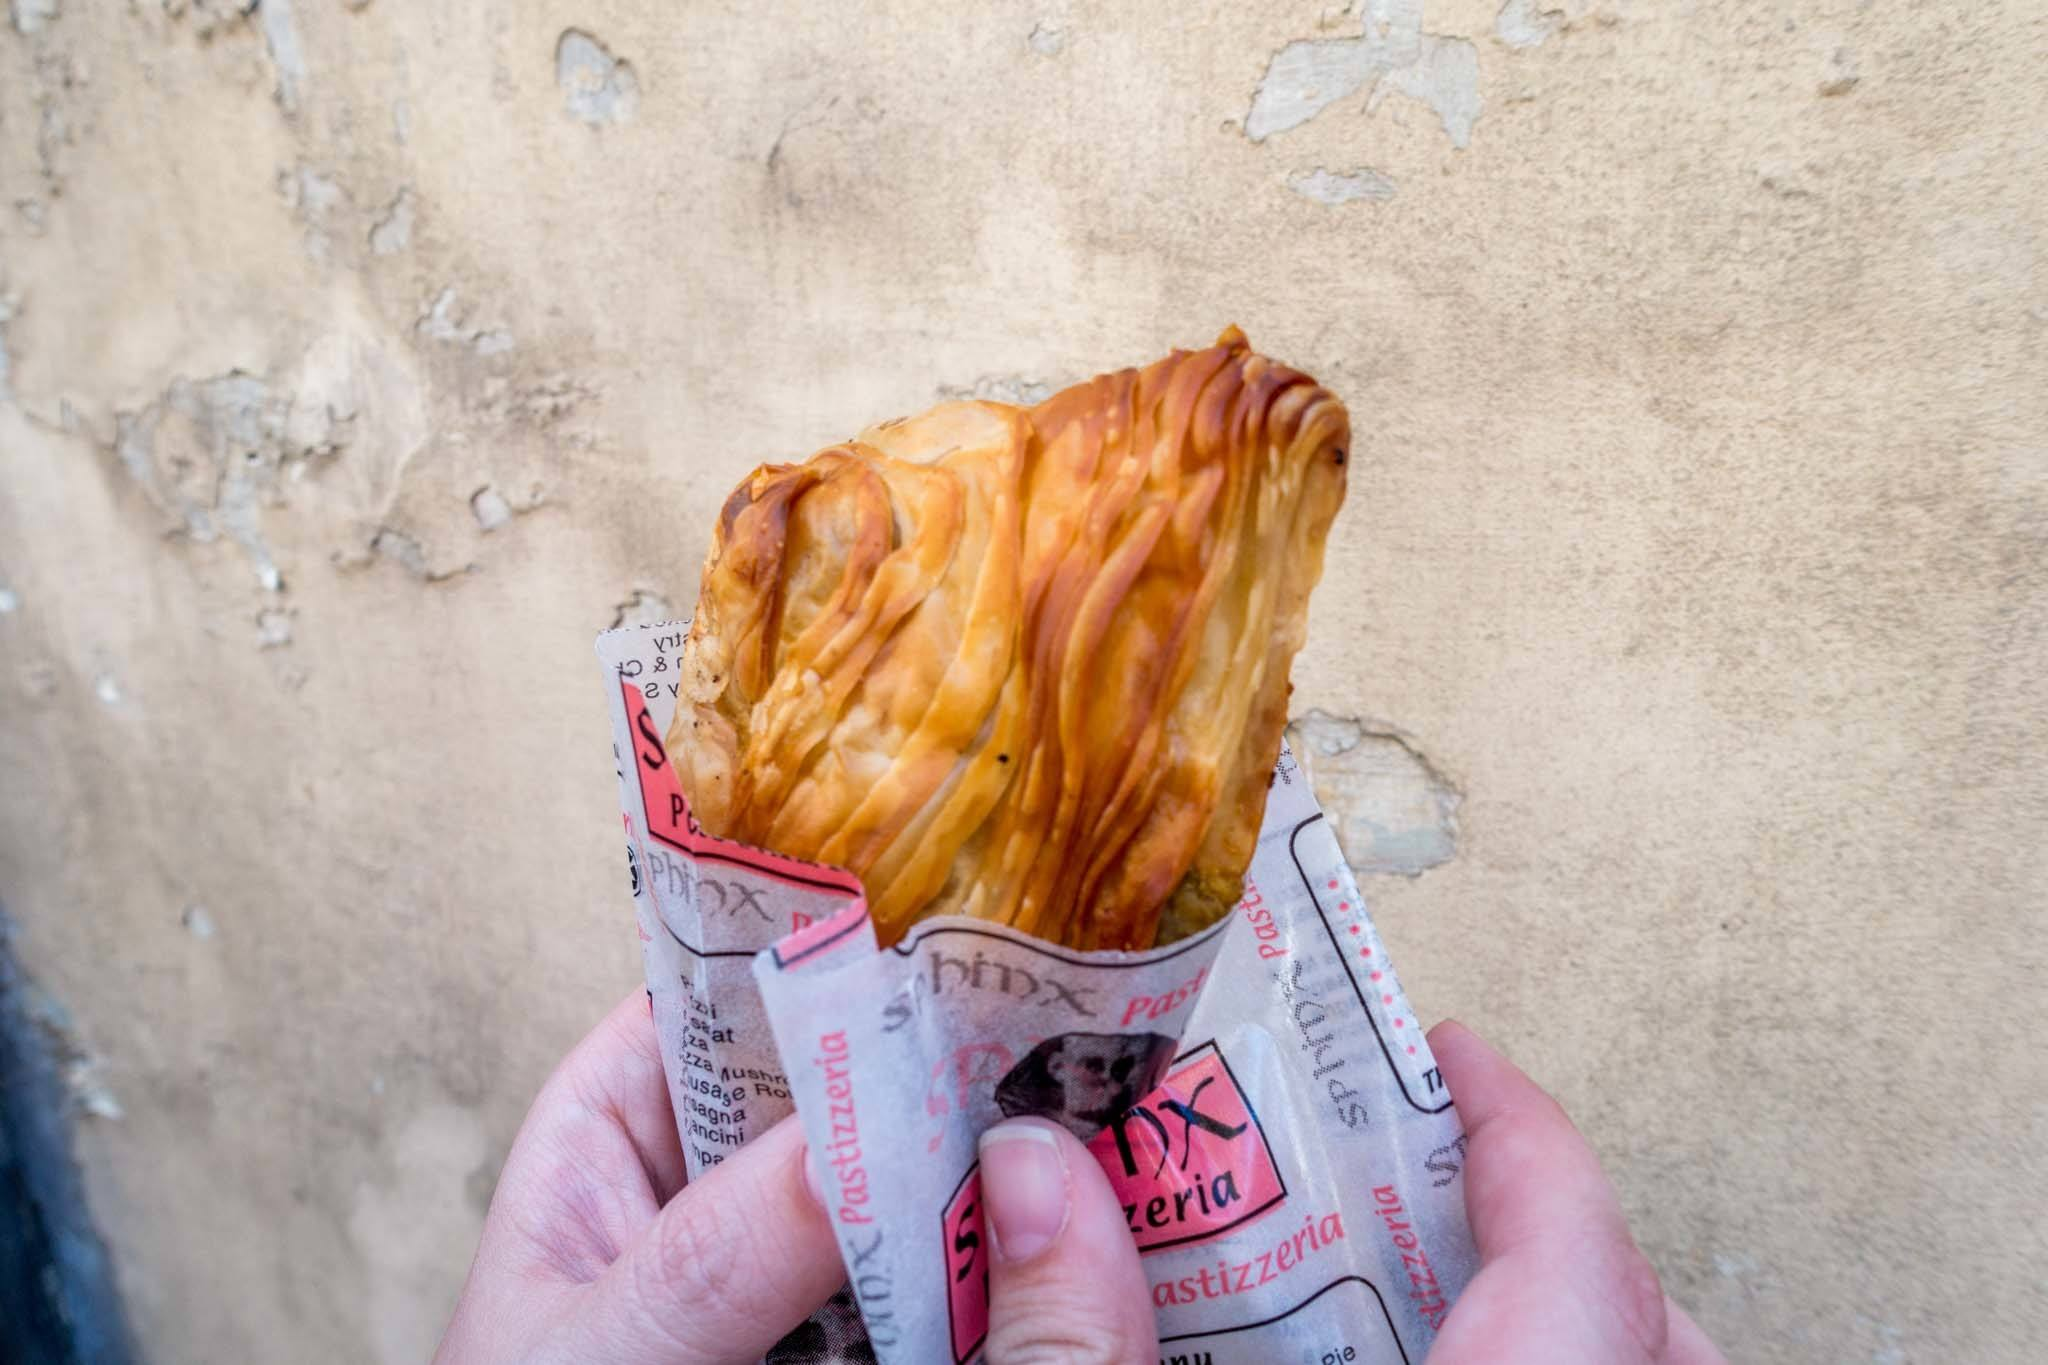 Pastizzi, a diamond-shaped pastry filled with peas in Malta